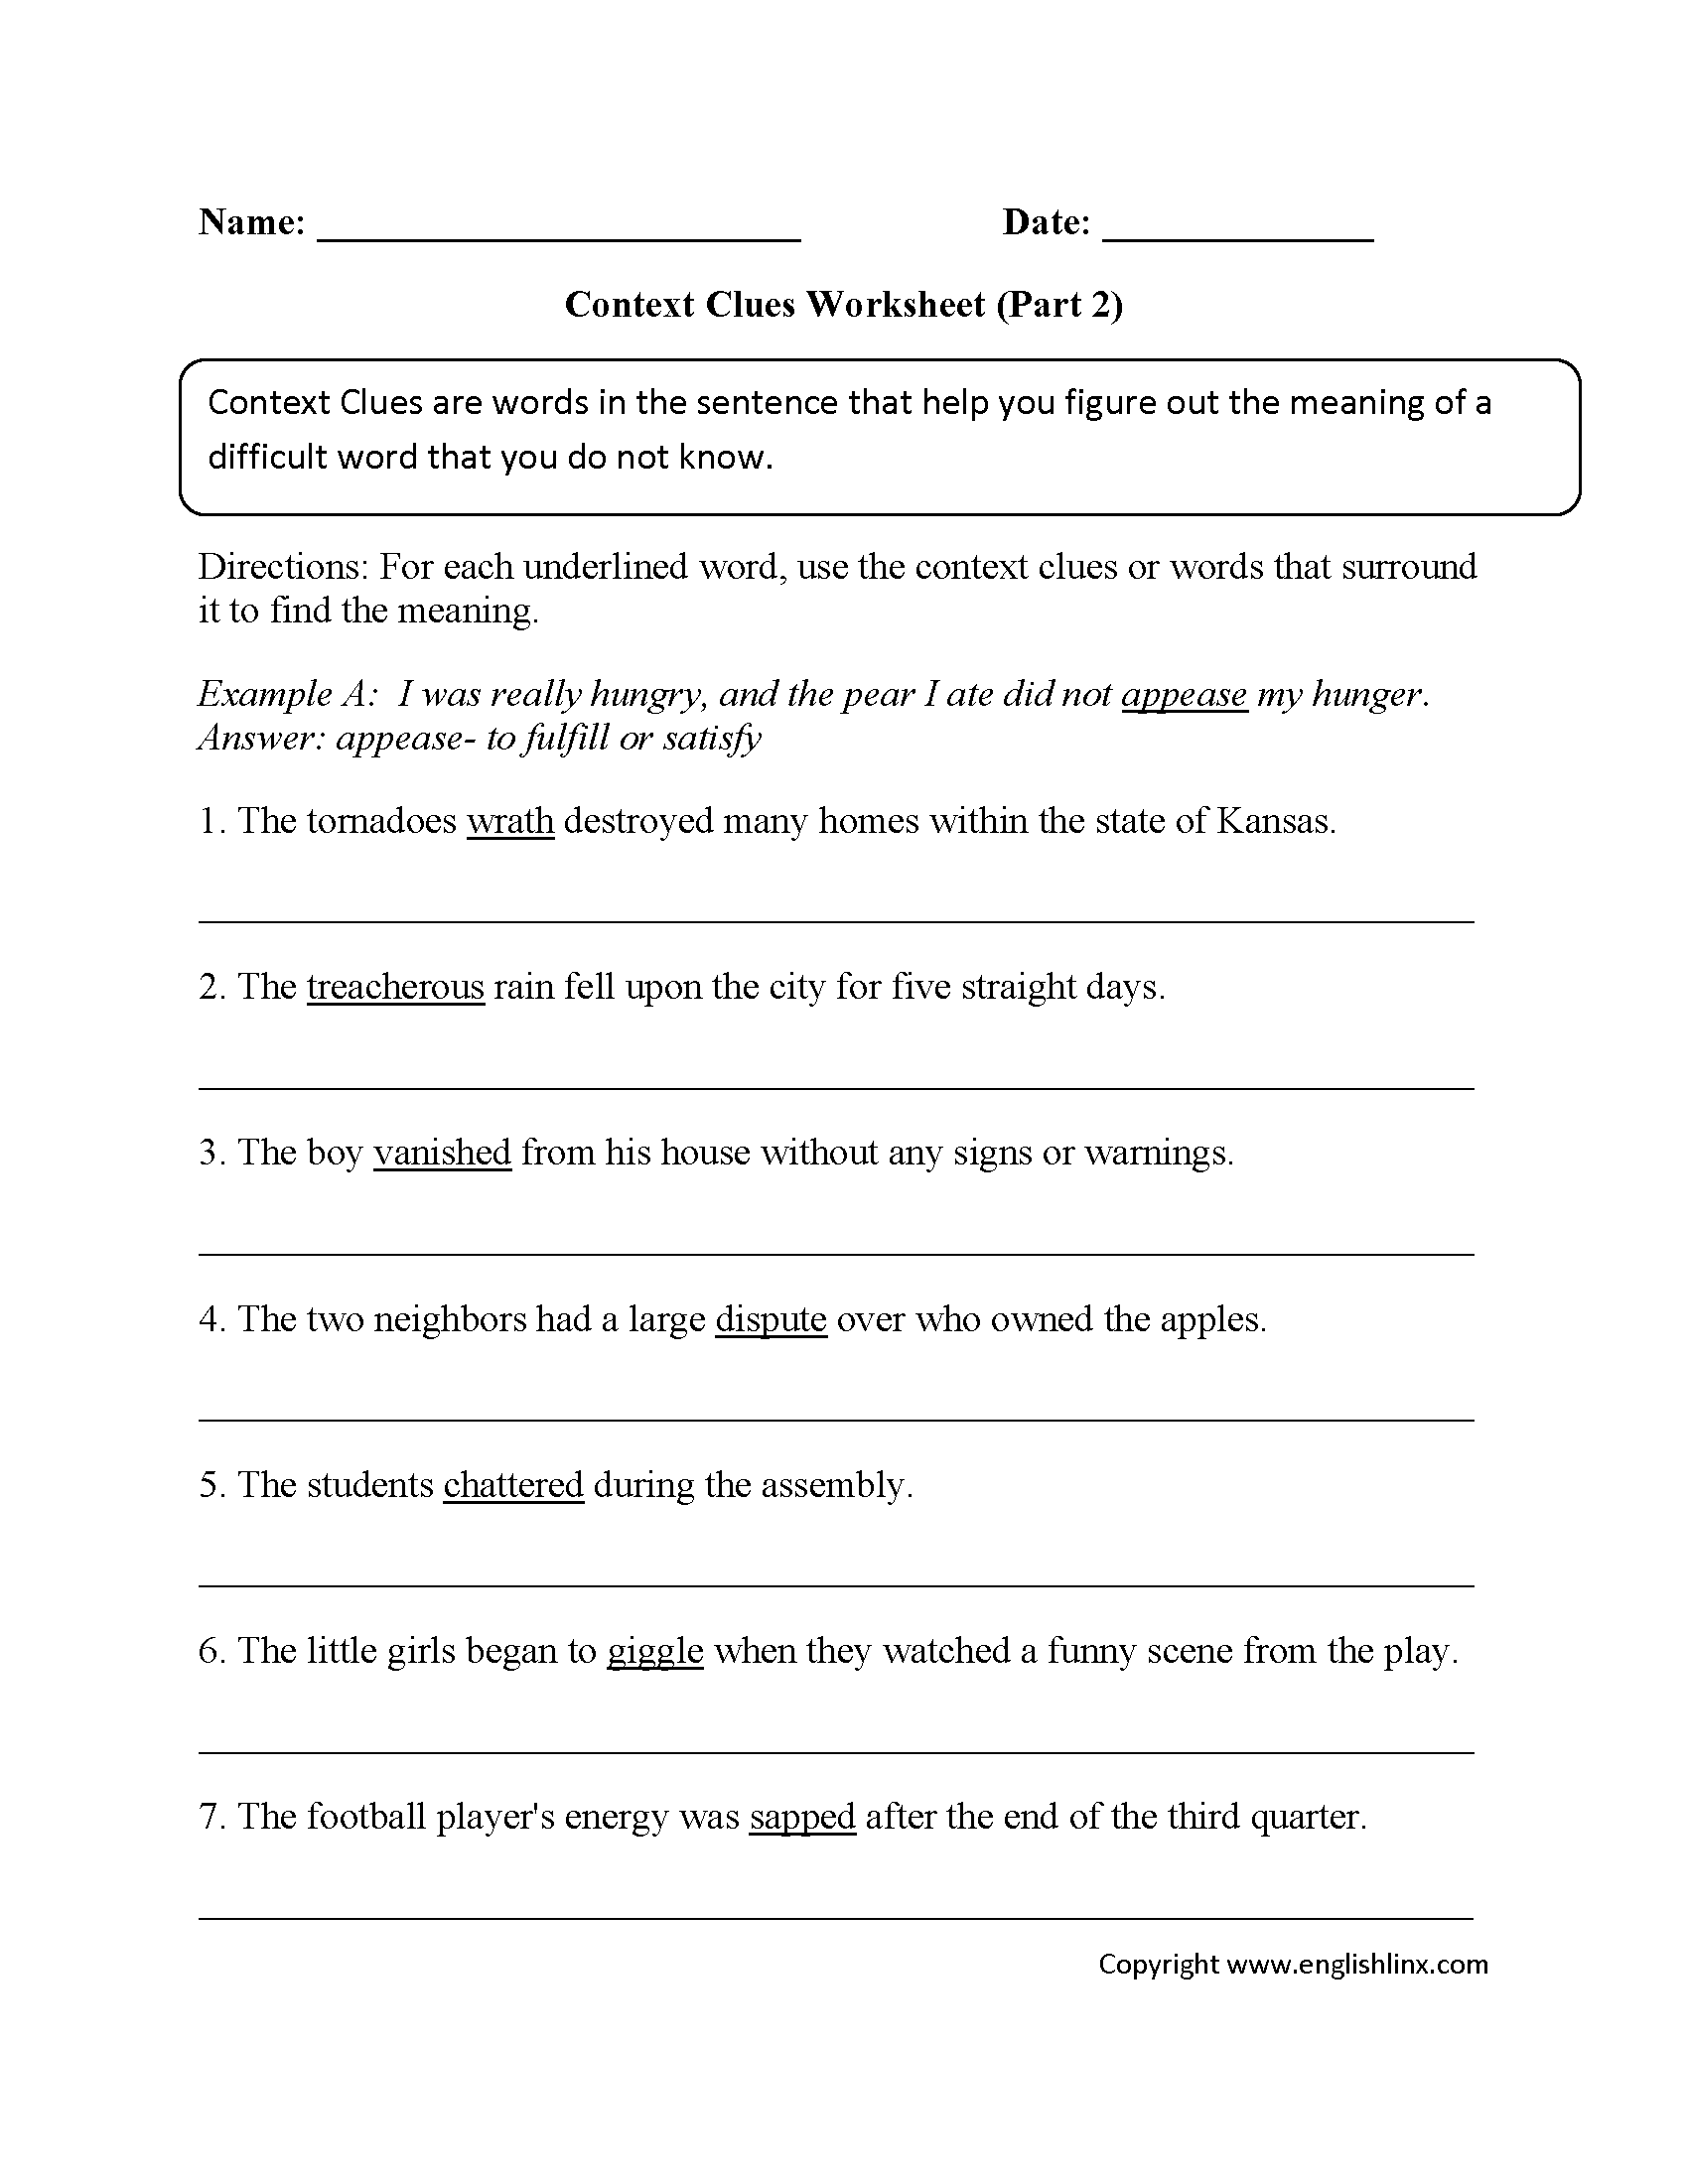 Englishlinx Context Clues Worksheets